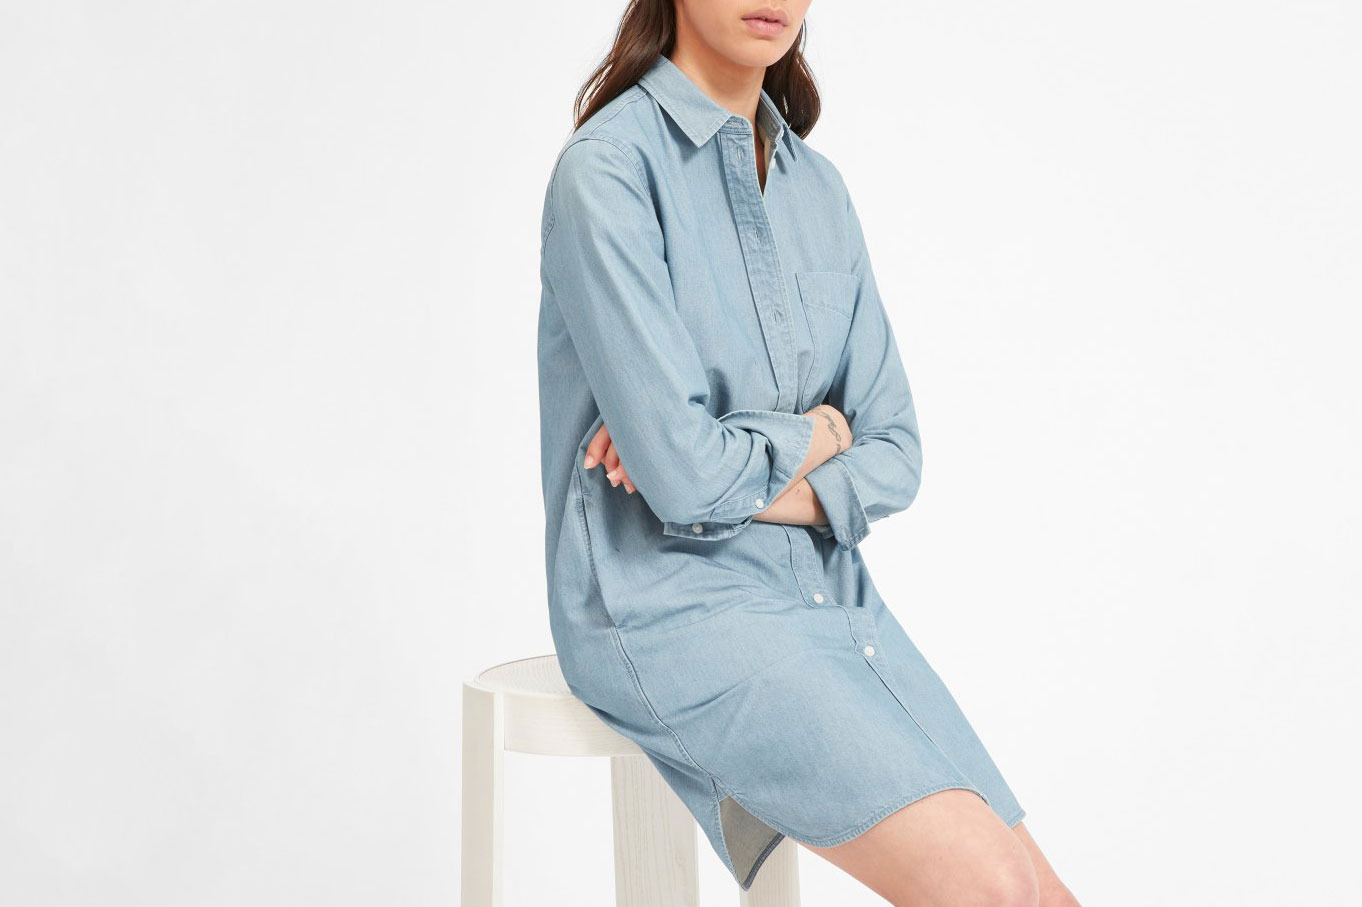 The Jean Shirtdress